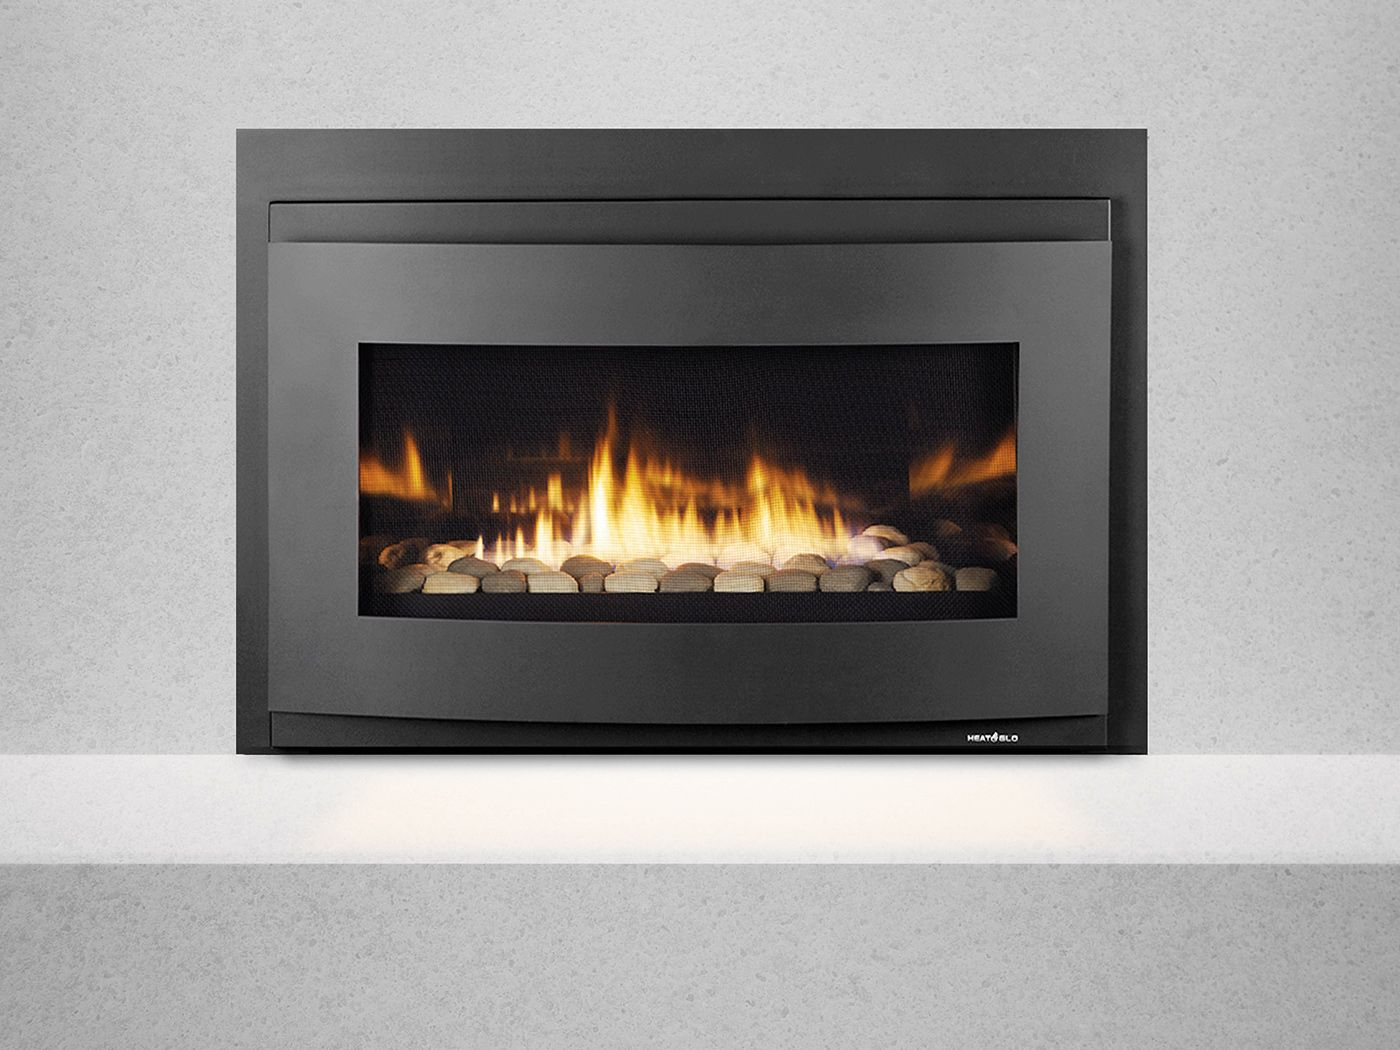 How To Update And Upgrade An Existing Fireplace Gas Fireplace